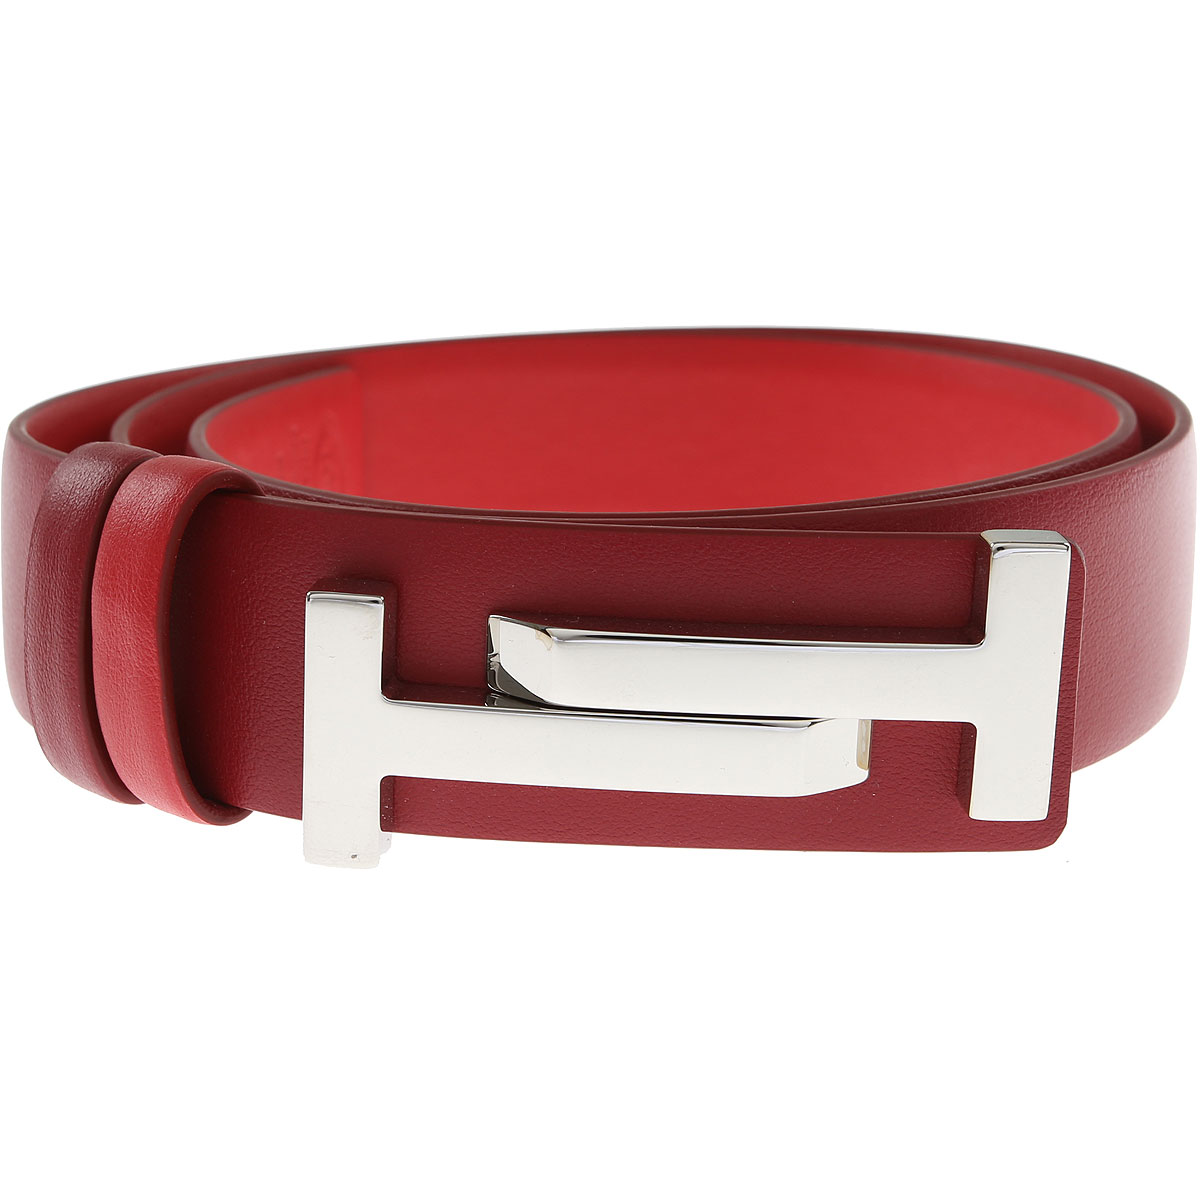 Tods Womens Belts On Sale, Red, Leather, 2017, 36 inches - 90 cm 32 inches - 80 cm 38 inches - 95 cm